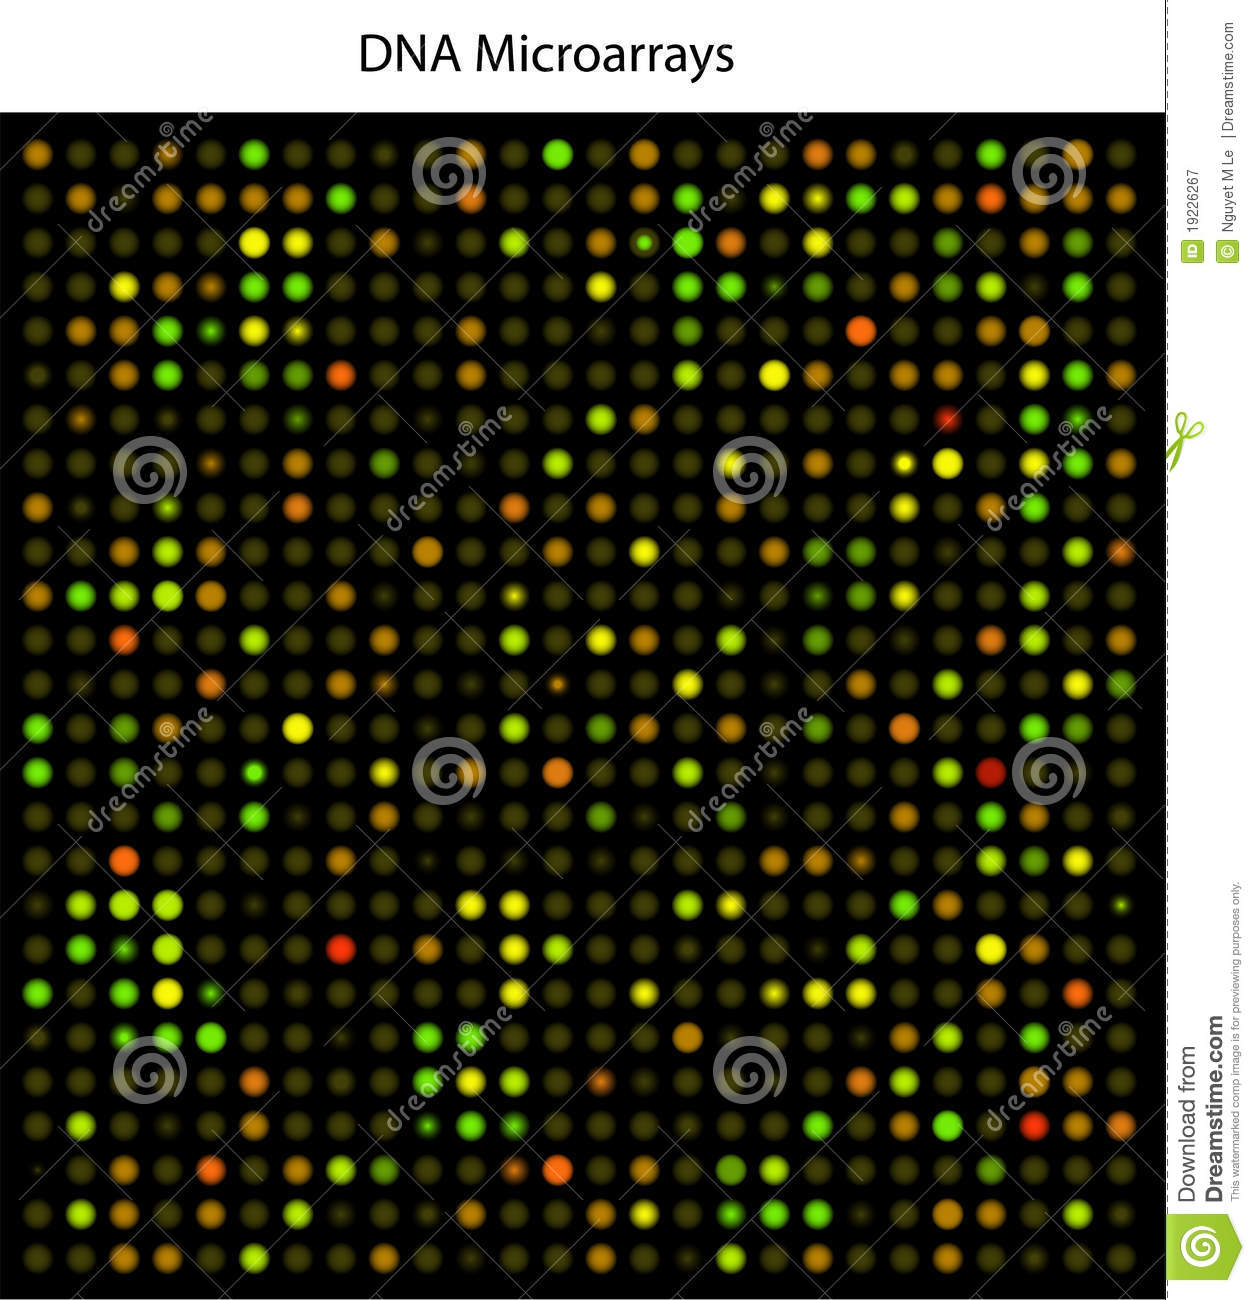 DNA microarrays: Types, Applications and their future